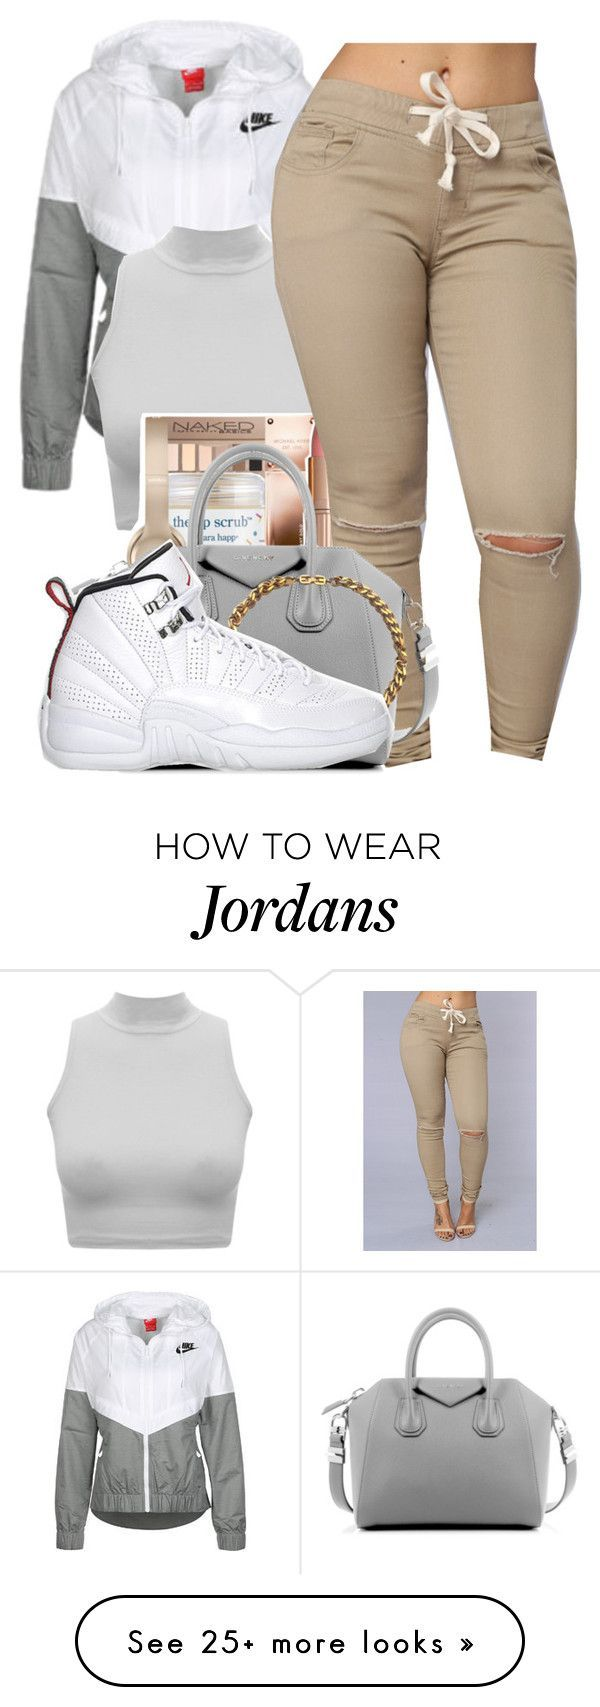 """SIMPLE"" by alexanderbianca on Polyvore featuring NIKE, Givenchy and Retrò"